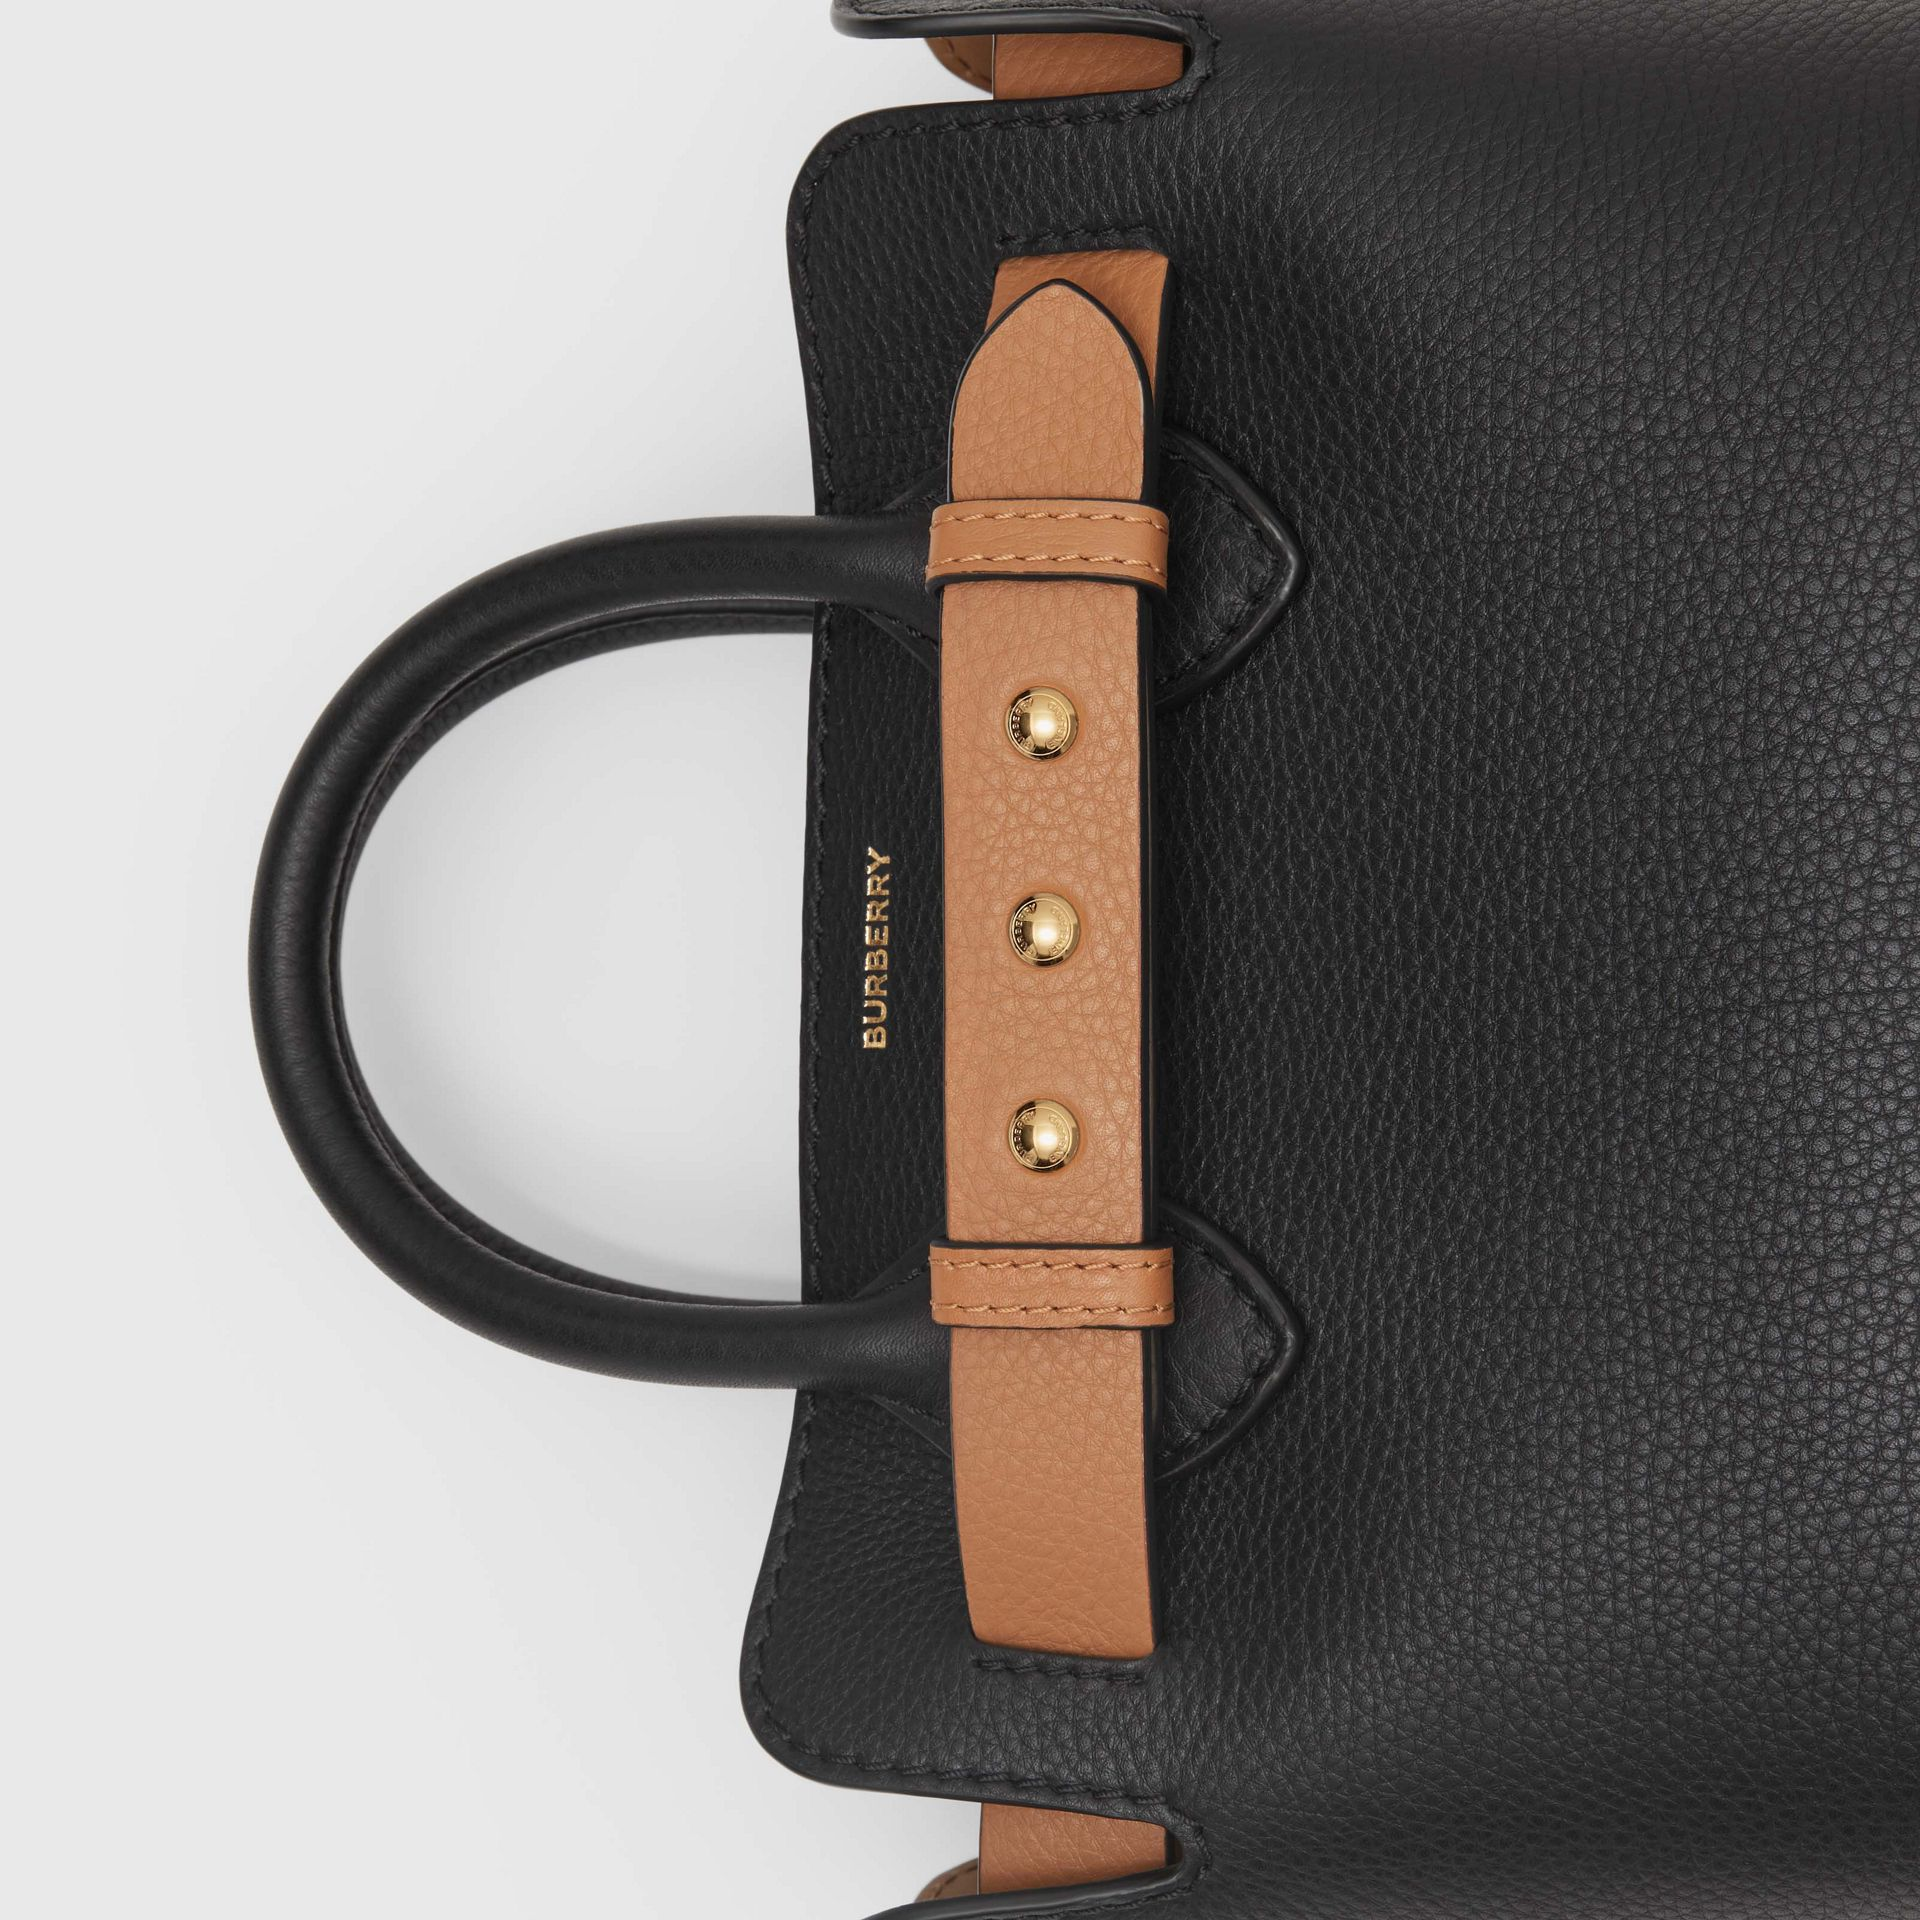 Borsa The Belt mini in pelle con tre borchie (Nero) - Donna | Burberry - immagine della galleria 1